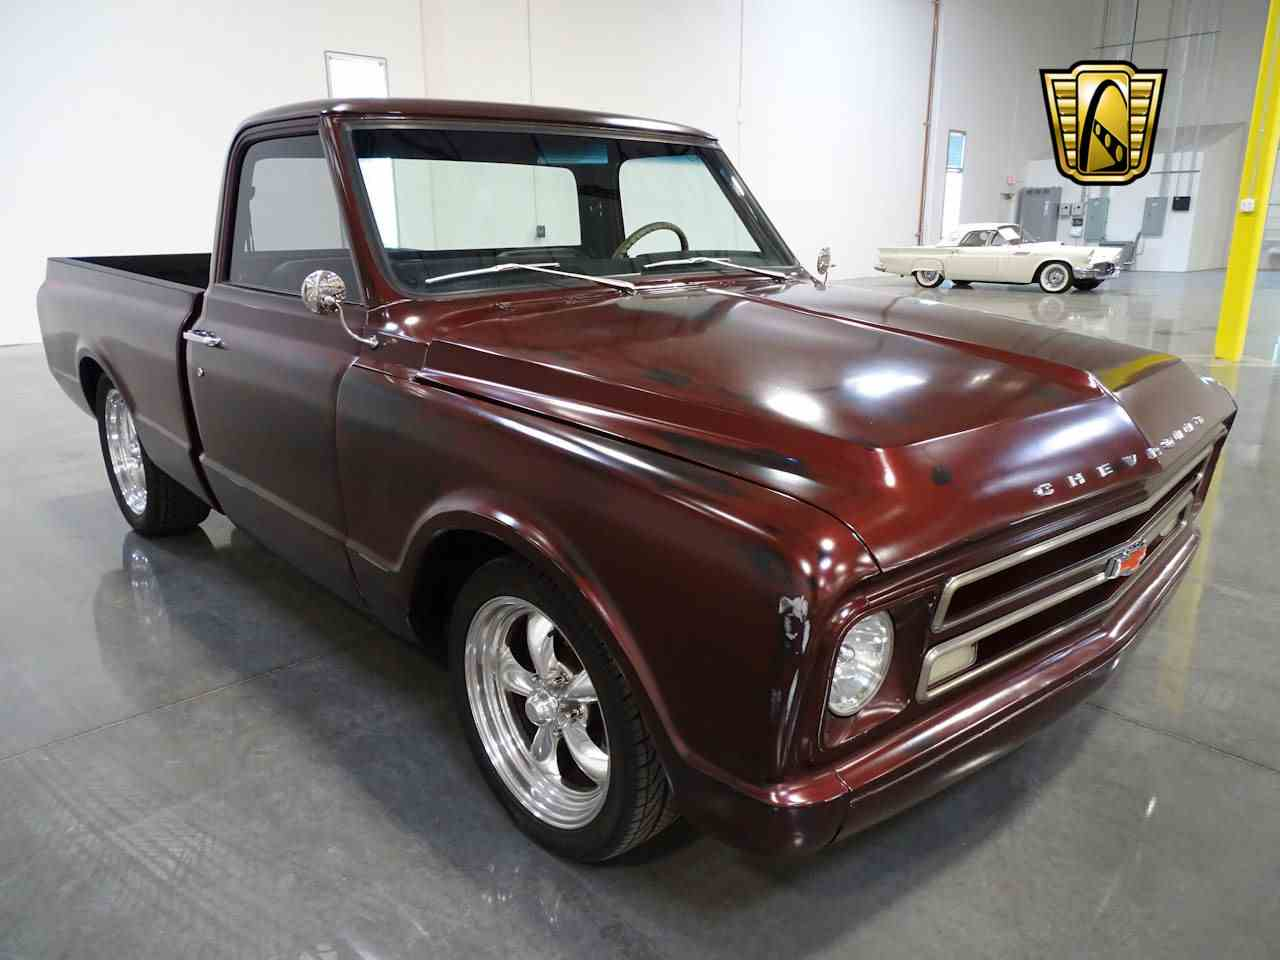 All Chevy 1969 chevrolet c10 for sale : 1969 Chevrolet C10 for Sale | ClassicCars.com | CC-1036003